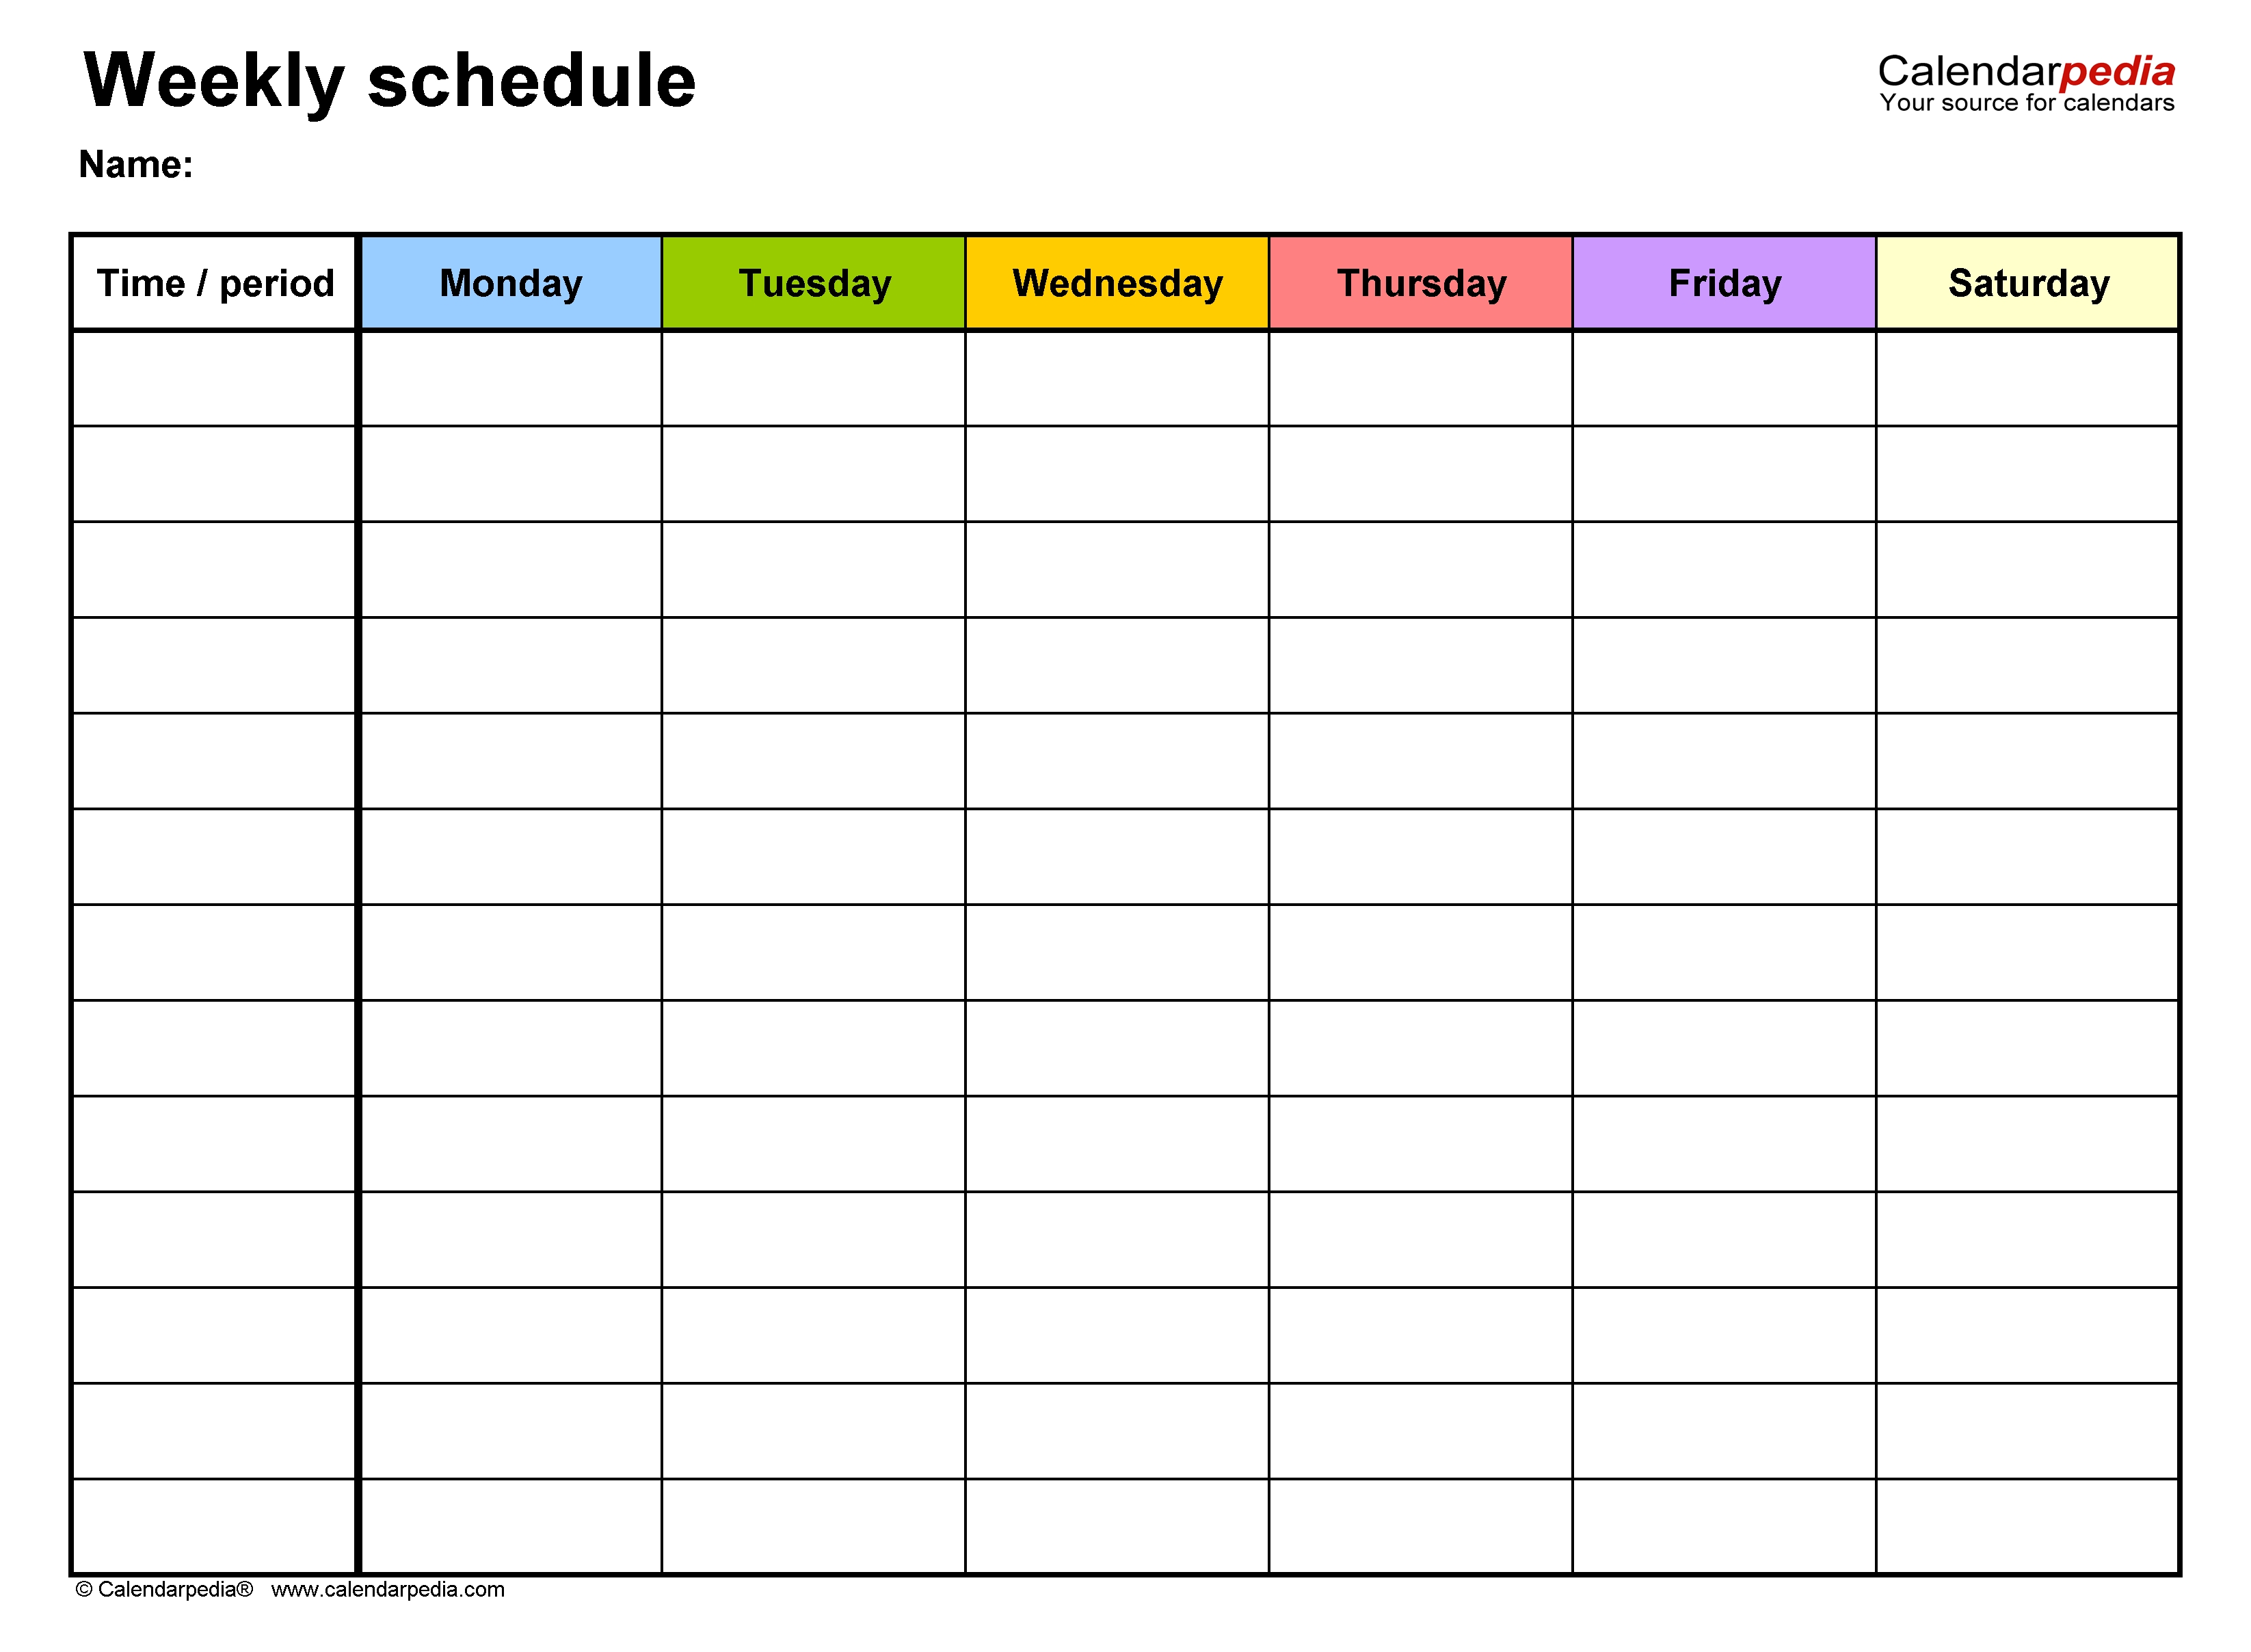 Free Weekly Schedule Templates For Excel - 18 Templates intended for One Week Calendar With Hours